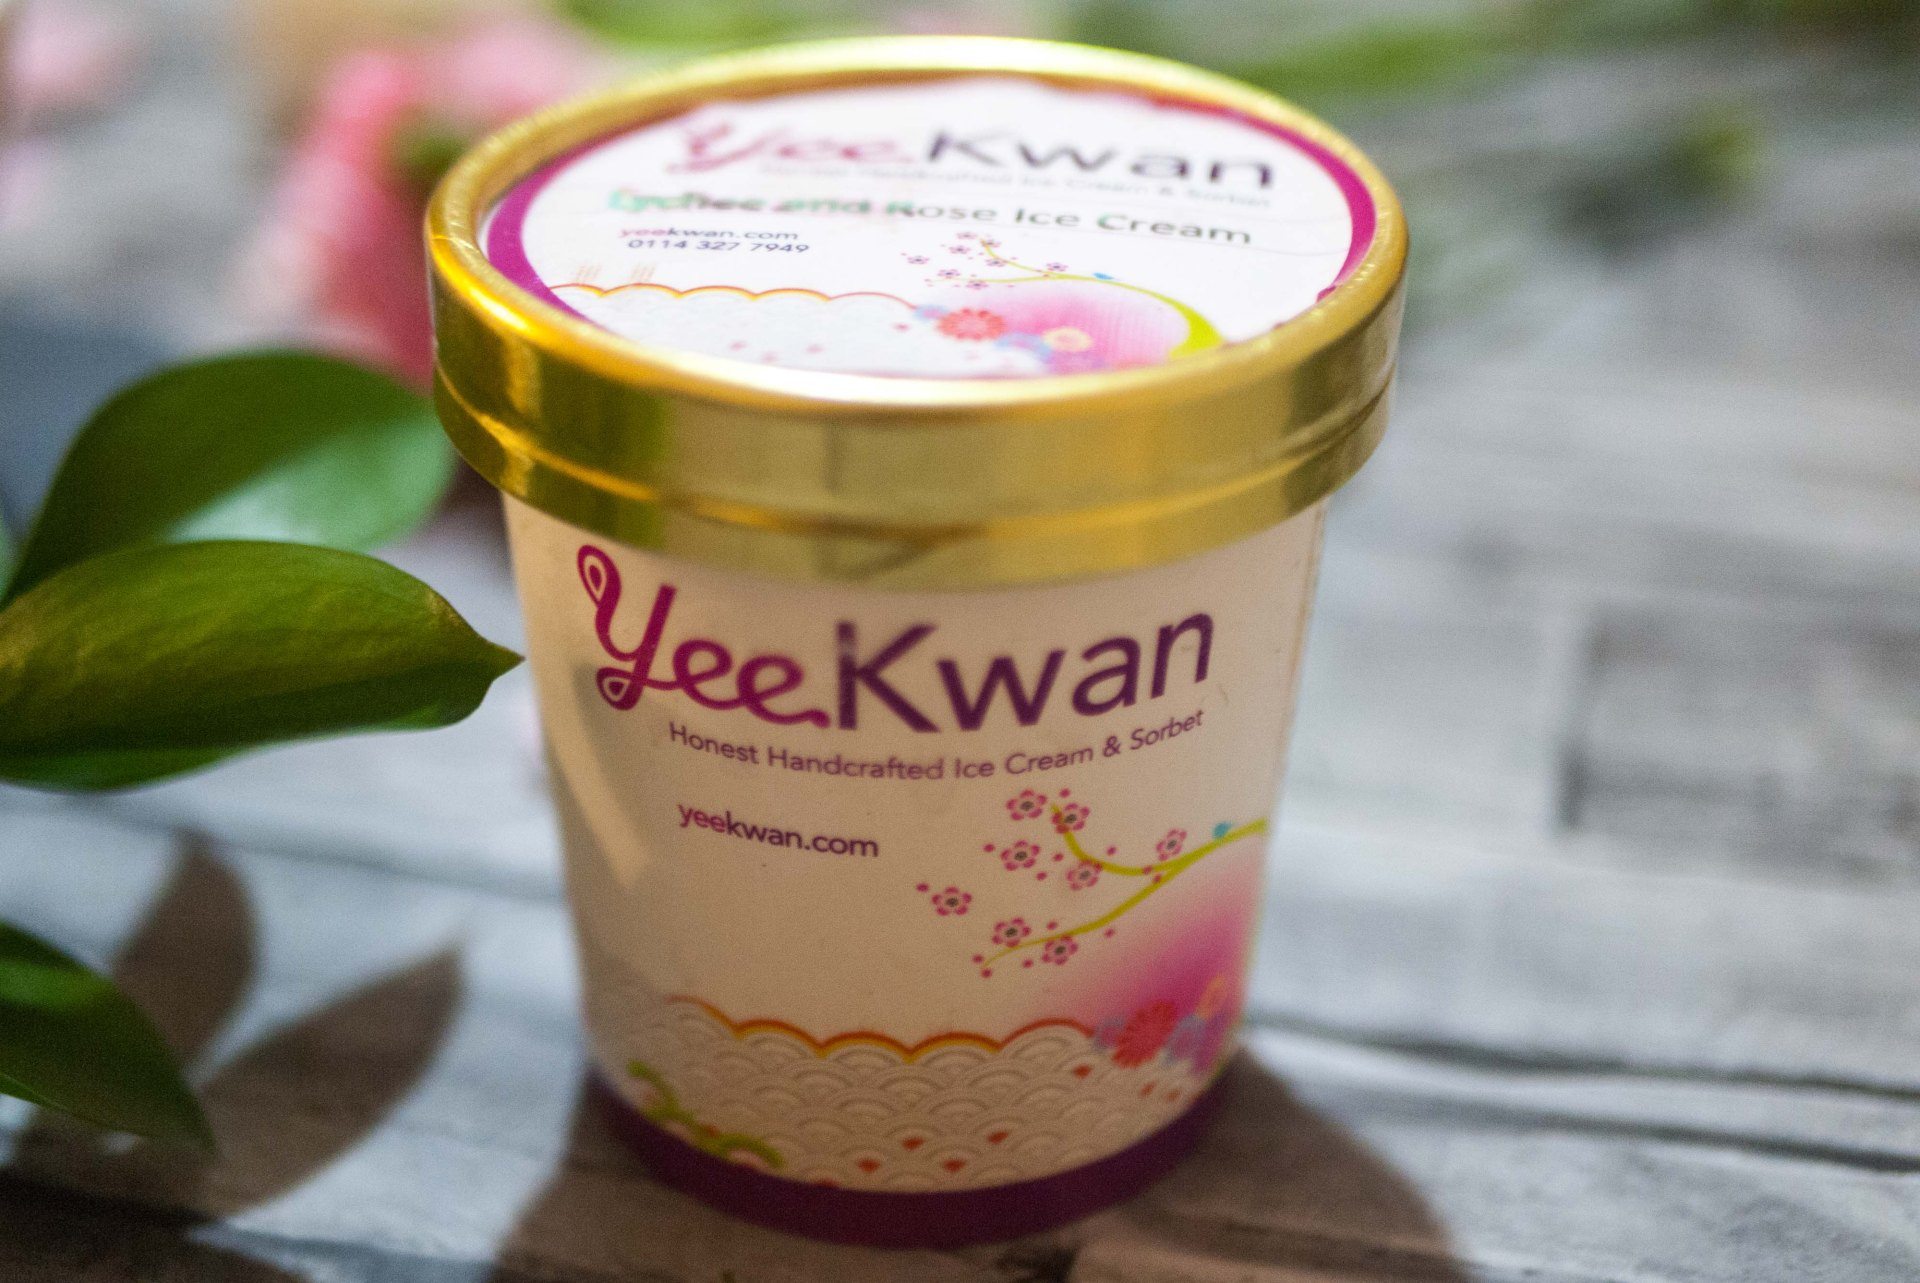 Yee Kwan ice cream tub